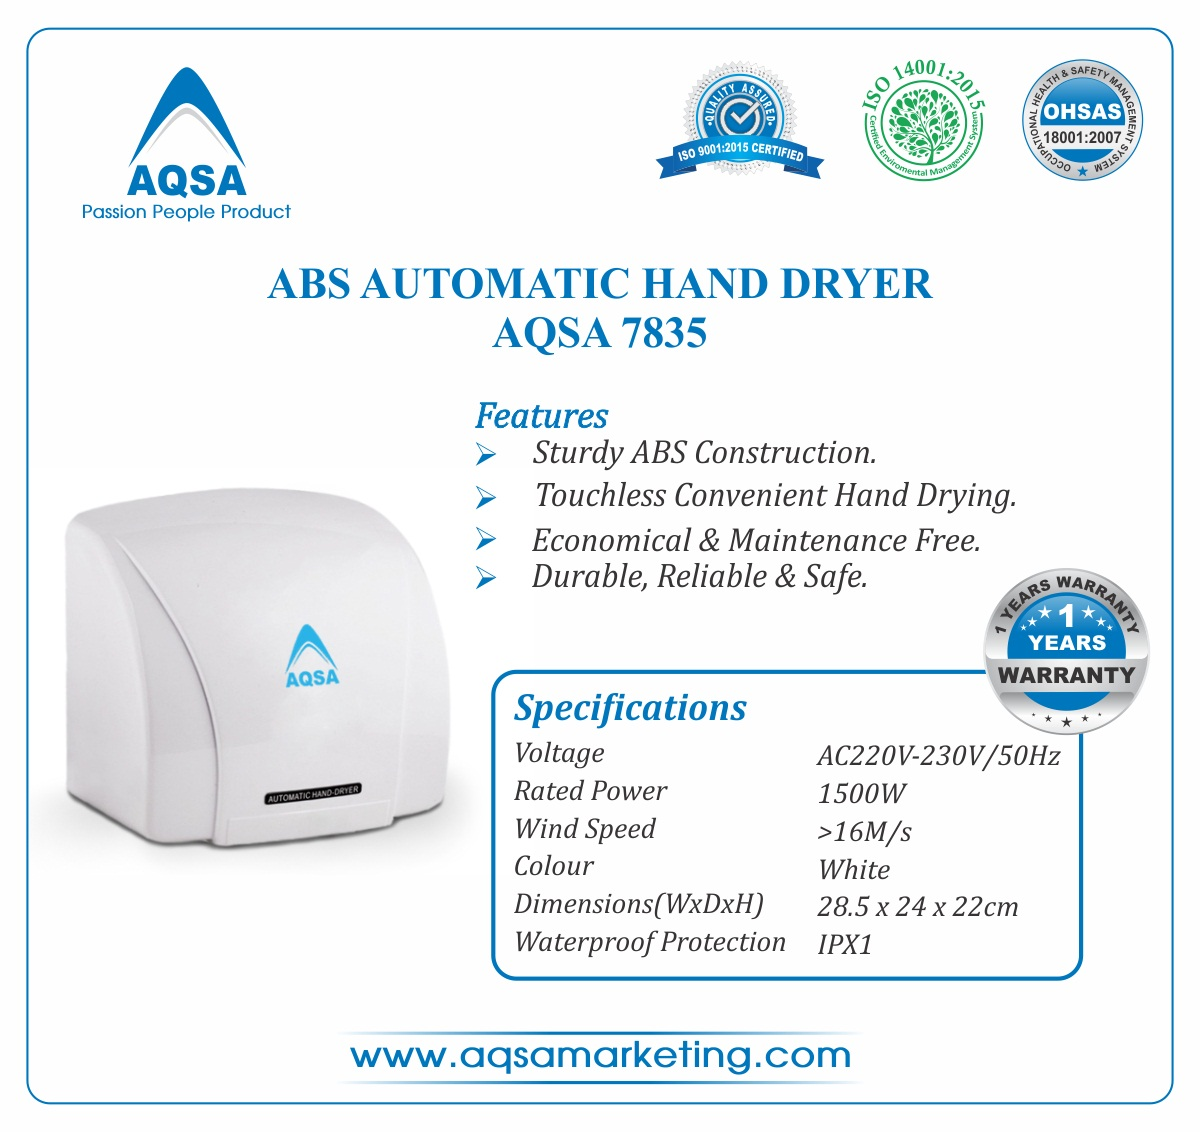 ABS Automatic Hand Dryer image